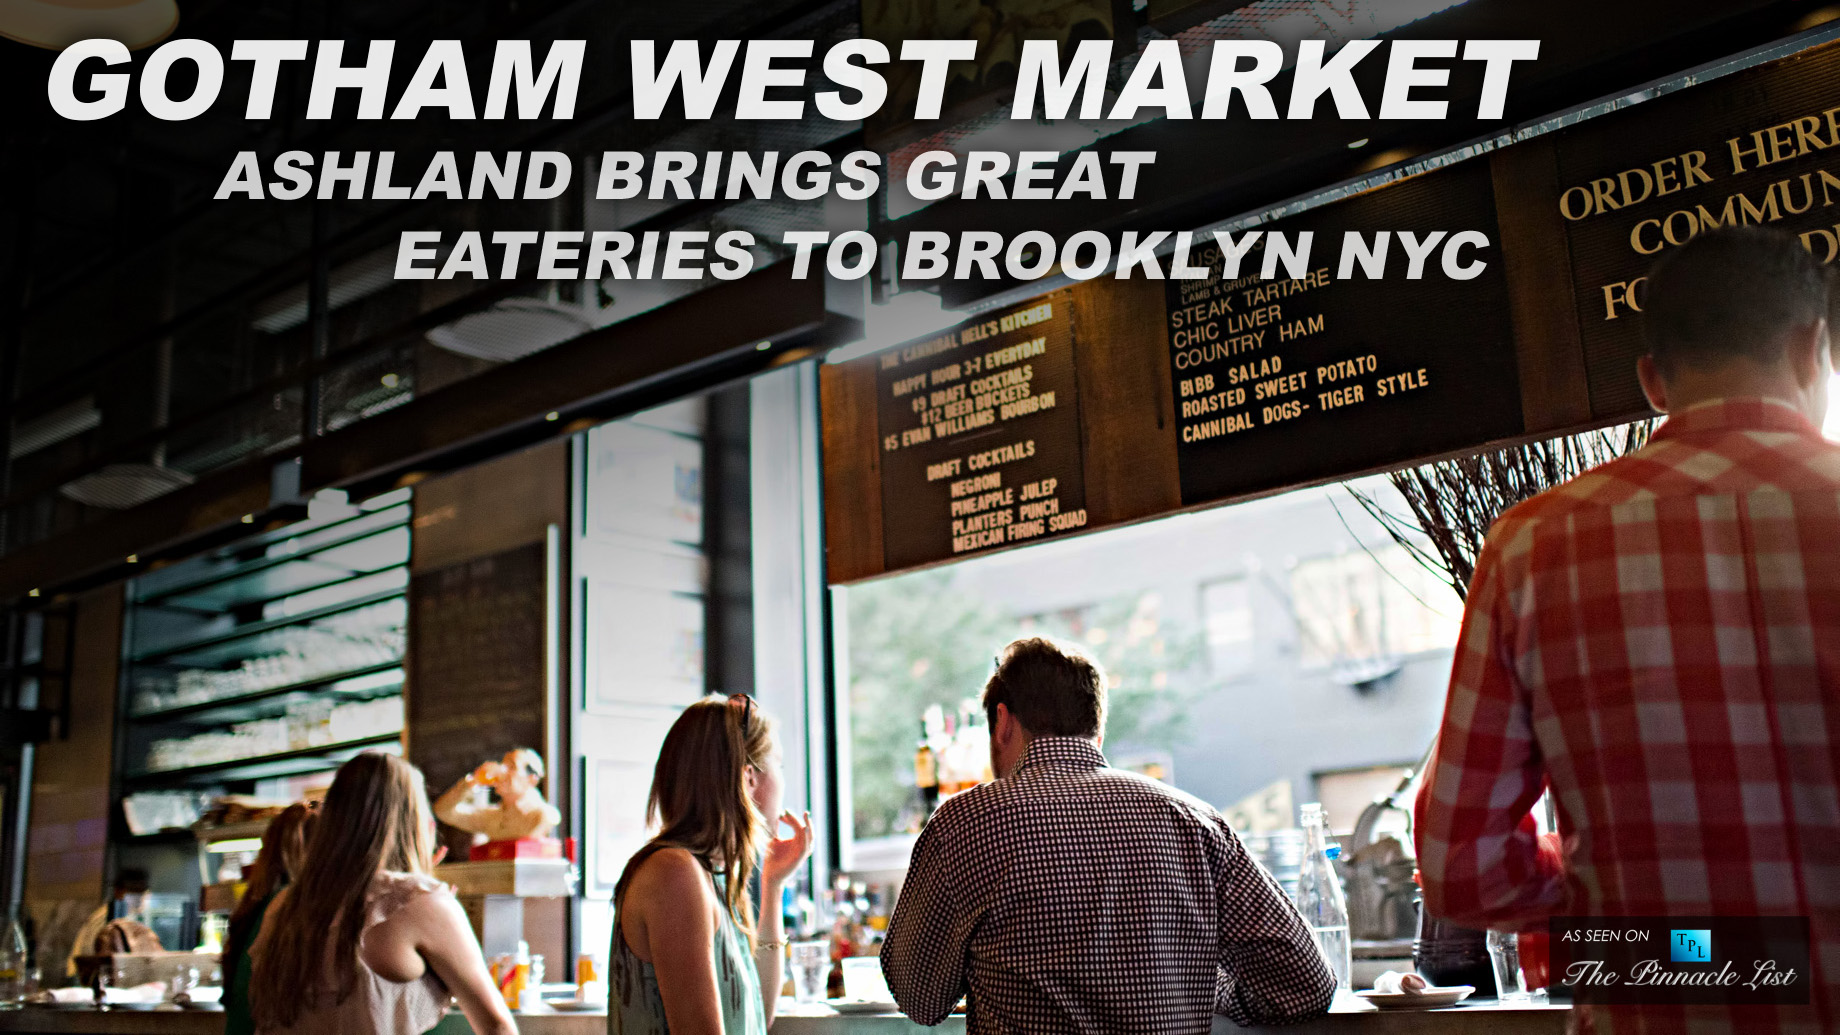 Gotham West Market at the Ashland Brings Great Eateries to Brooklyn NYC